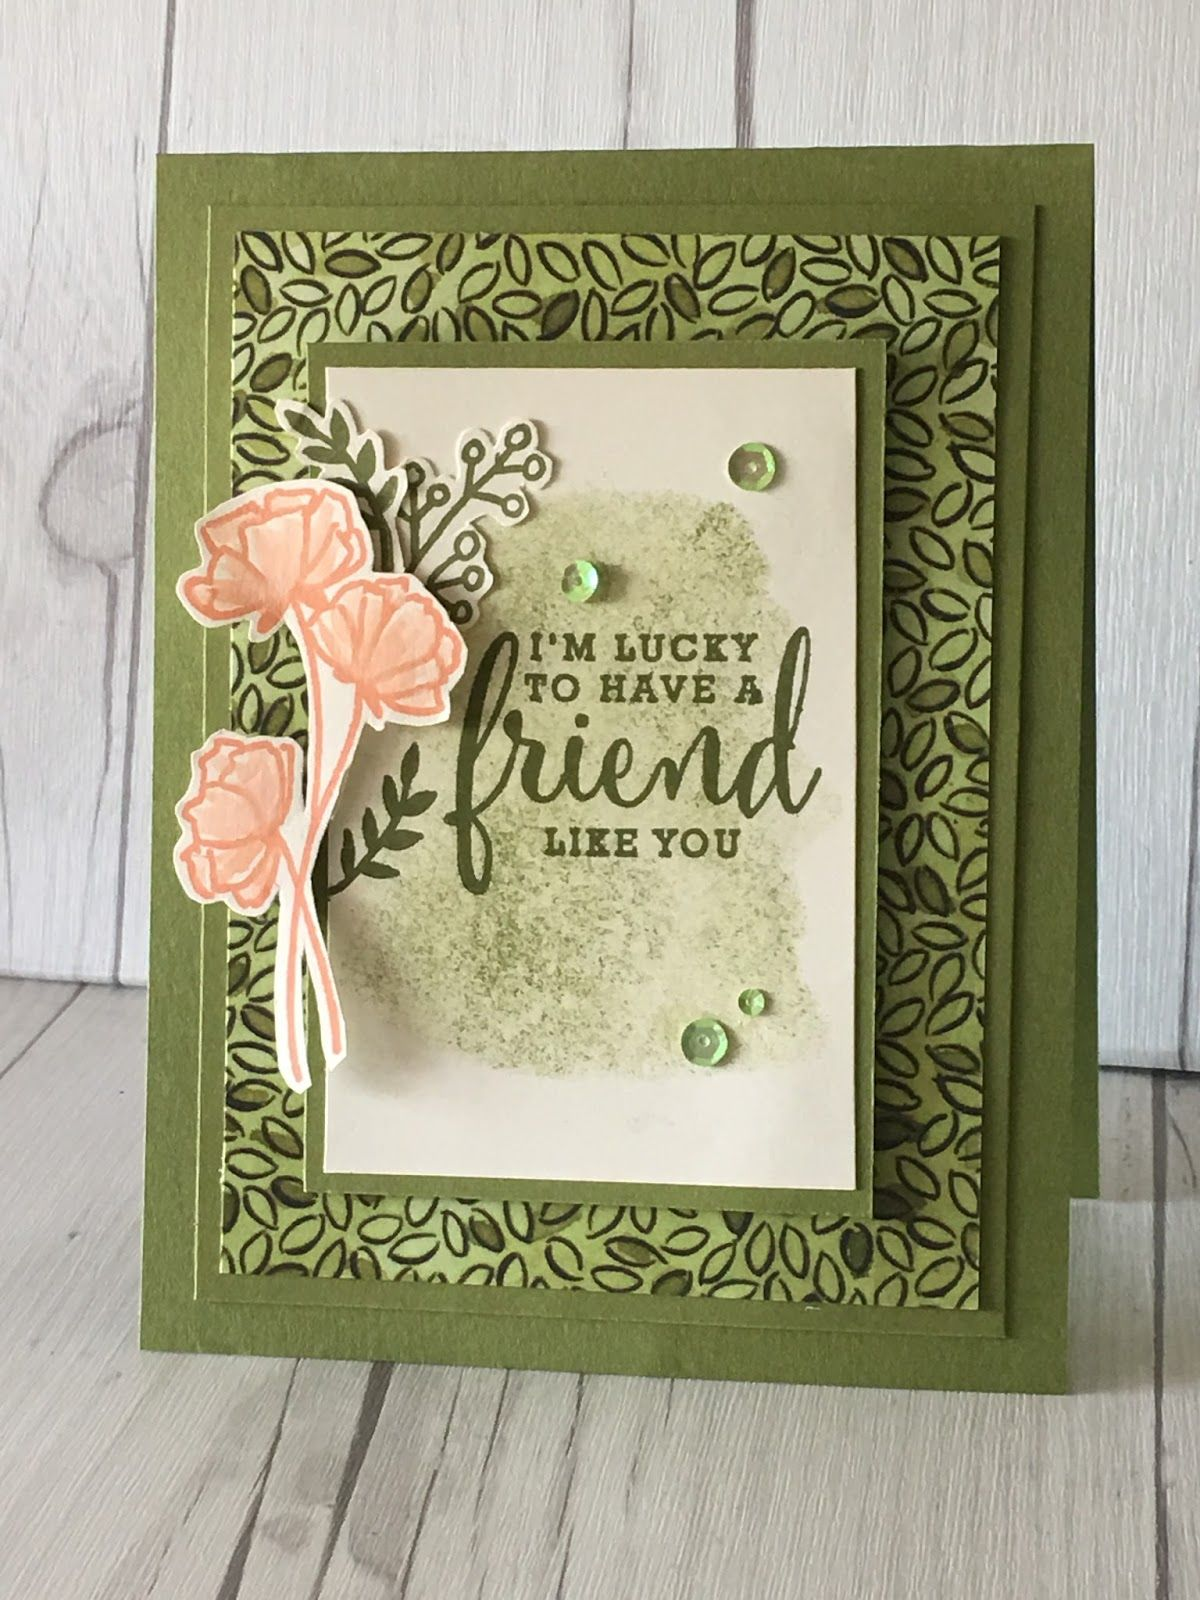 Pin by rosy jalifi on cardmaking ideas pinterest stampin up